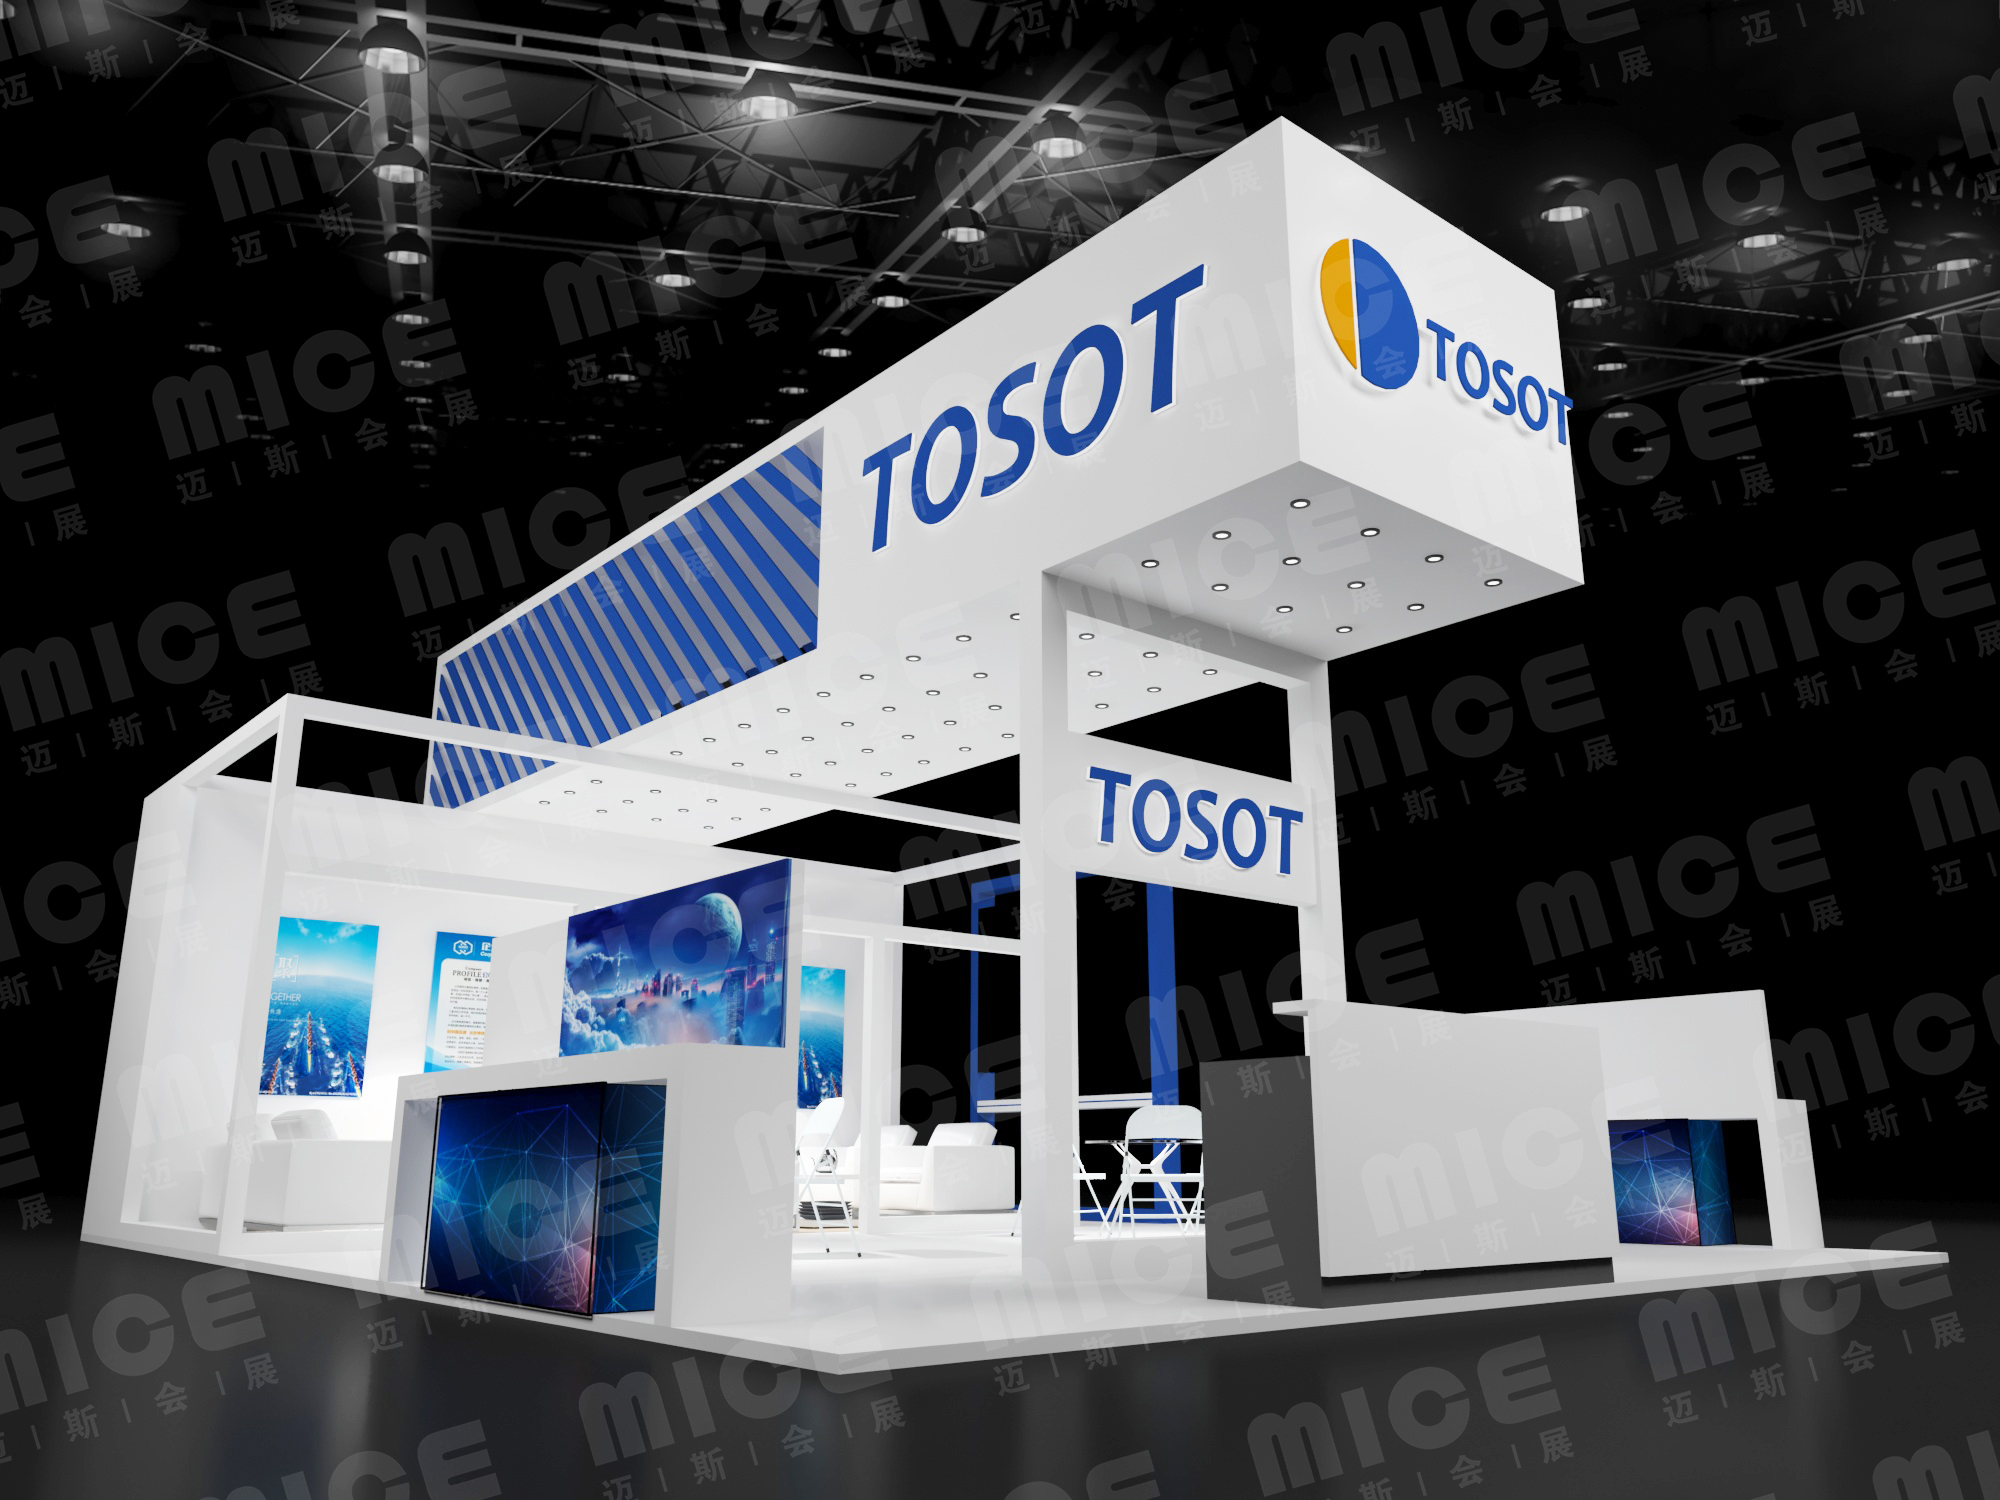 TOSOT 展台